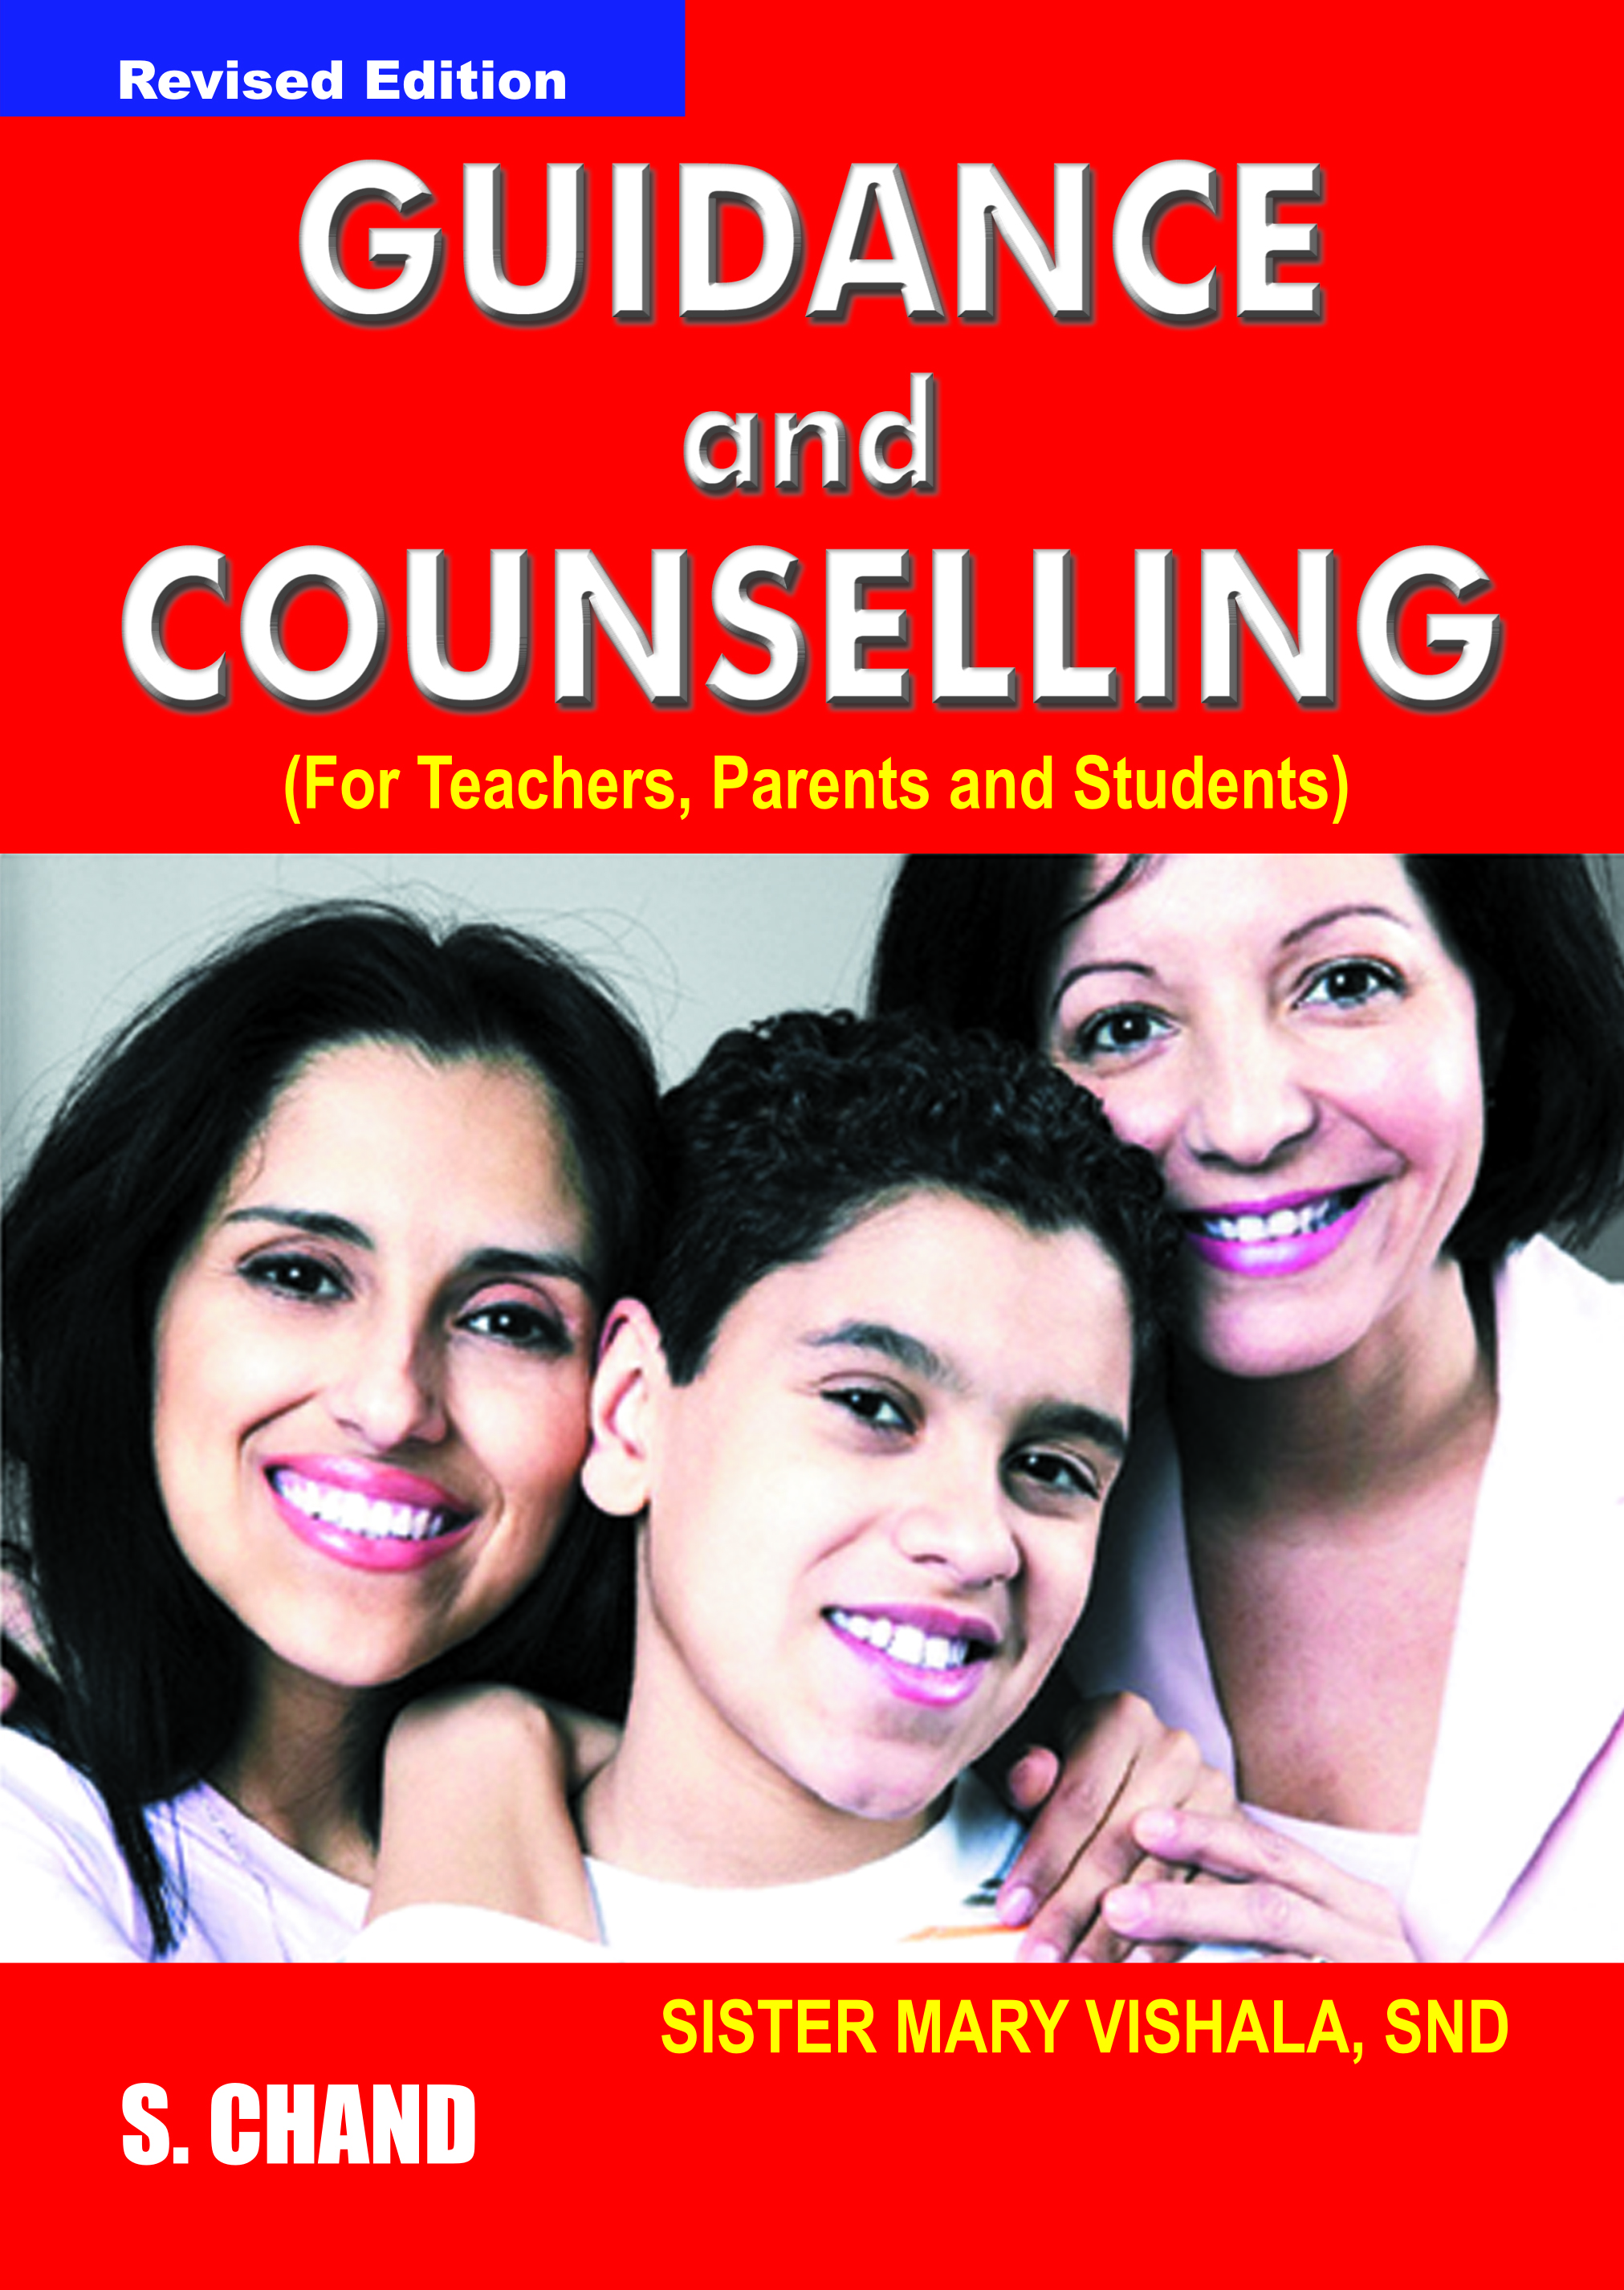 Guidance and Counselling (For Teachers, Parents and Students), 2/e